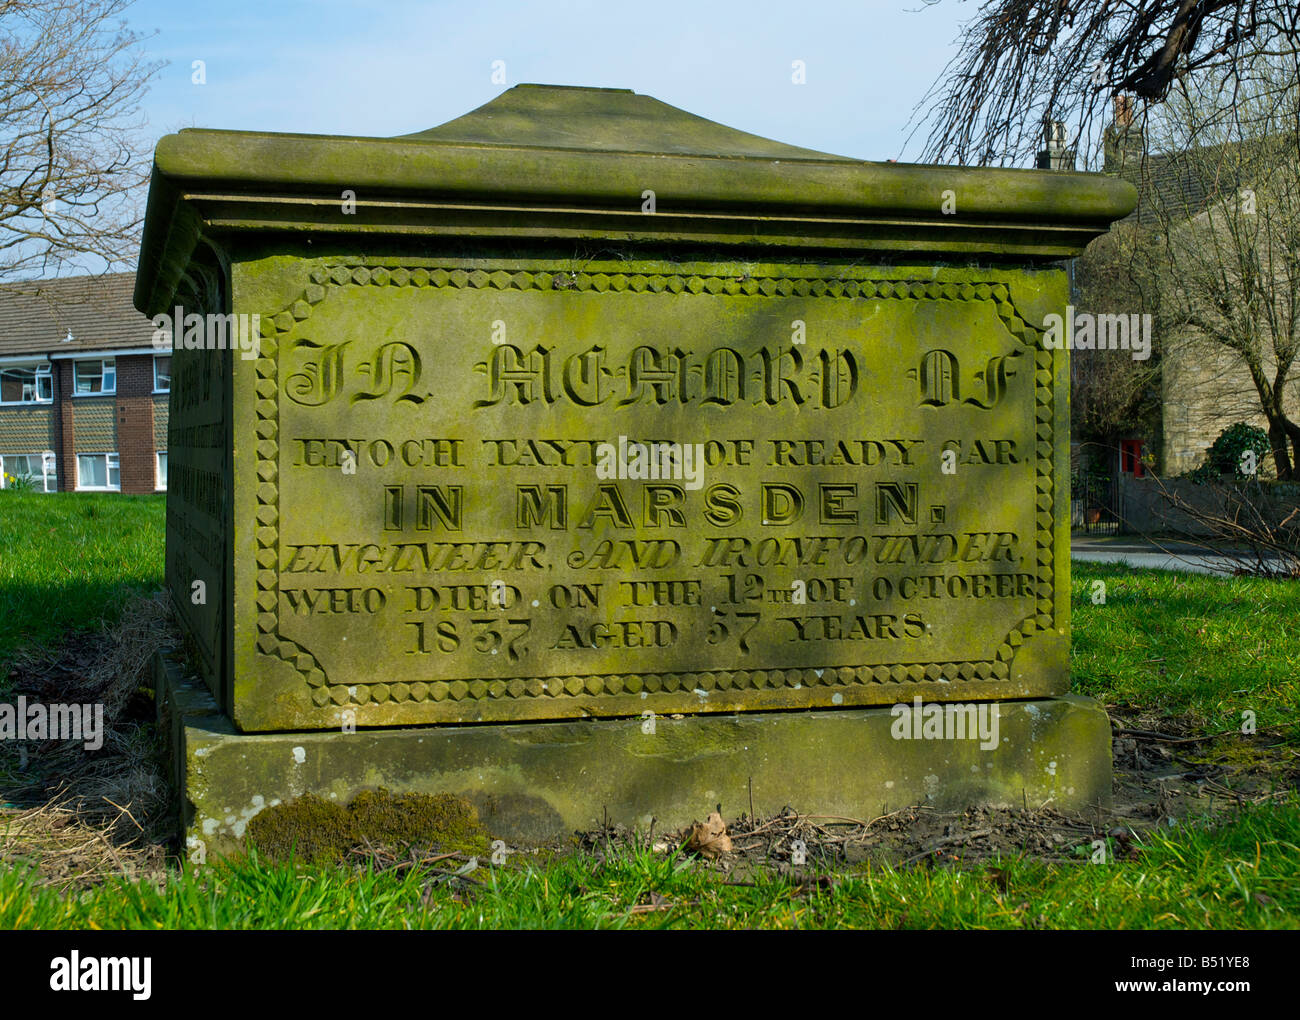 Grave of Enoch Taylor, maker of cropping machines, that inspired the Luddite revolts, Marsden, Lancashire, England - Stock Image